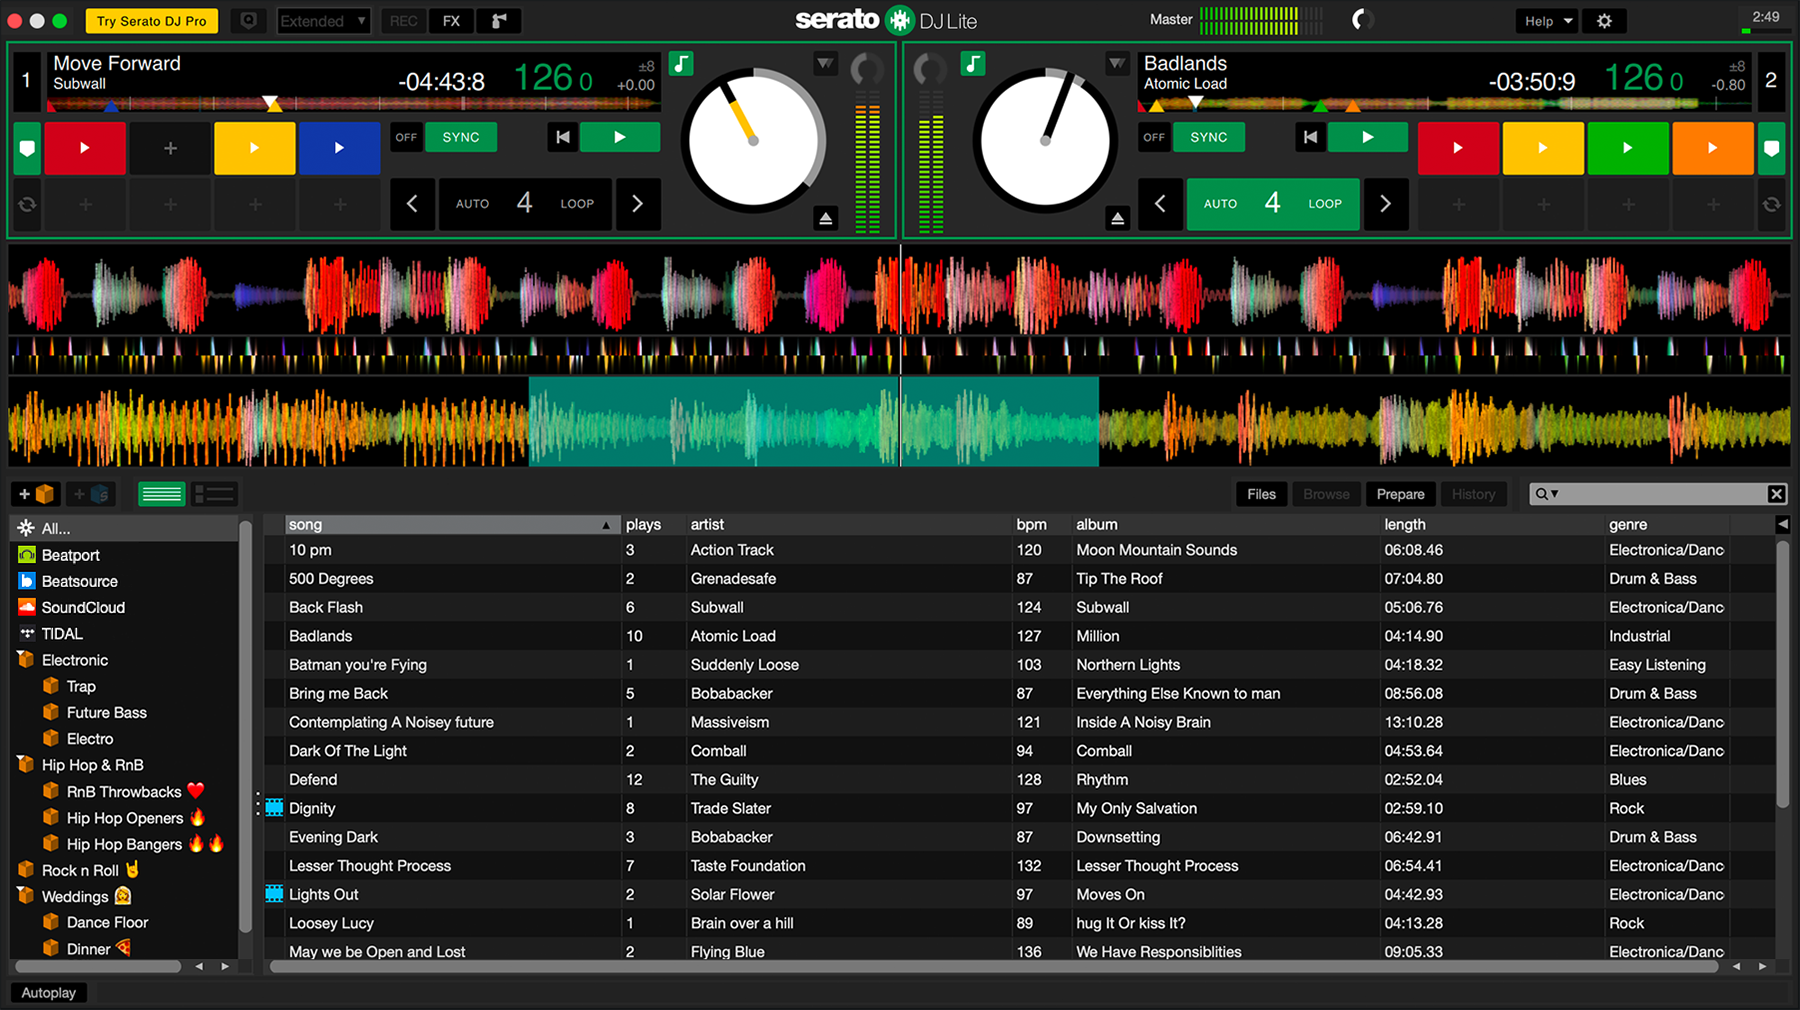 Serato dj software, free download for android